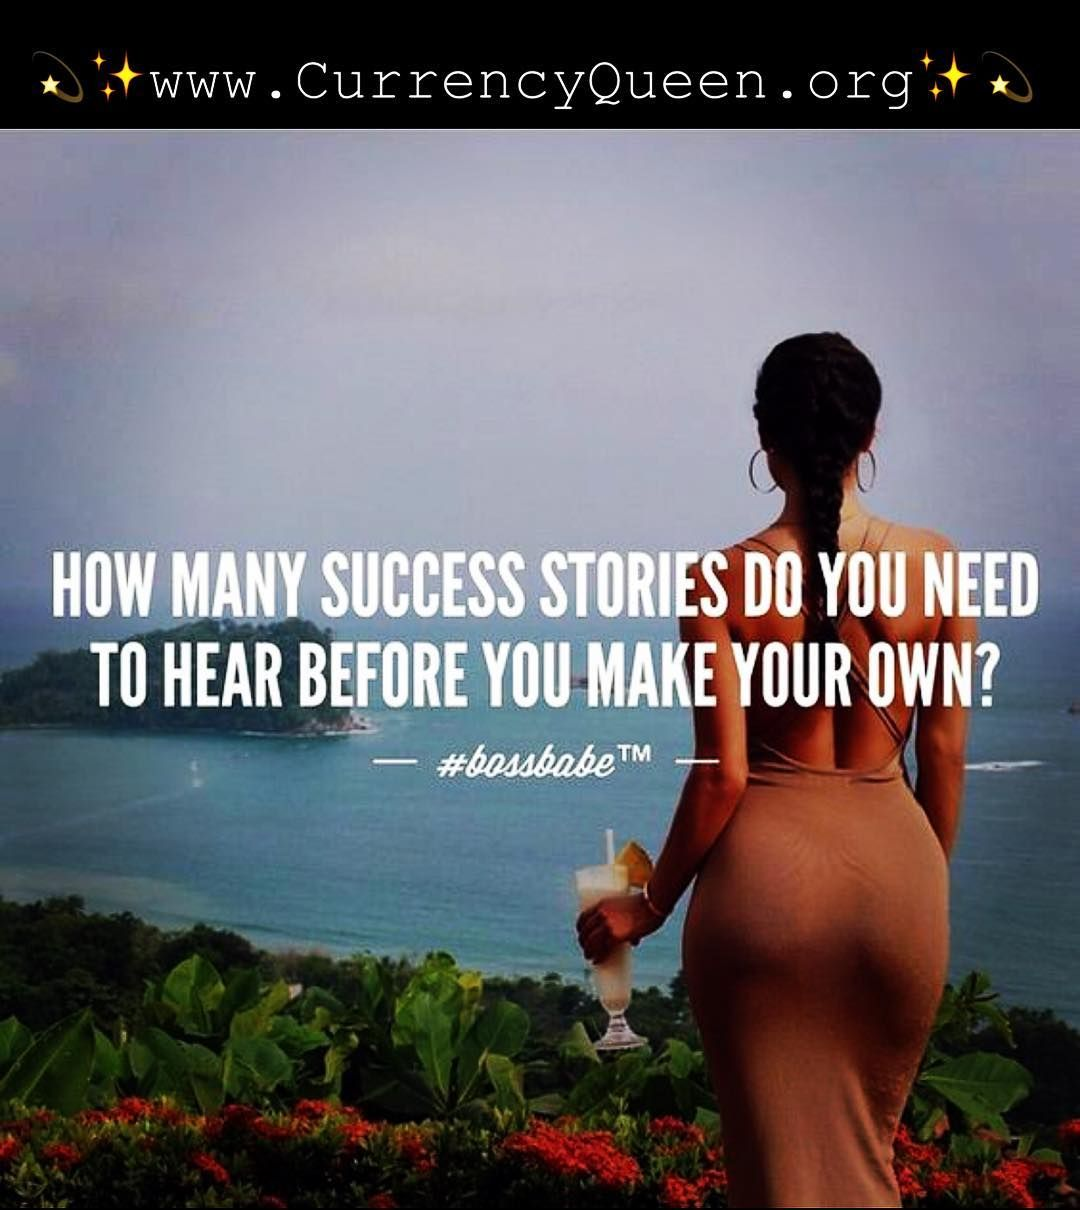 Network Marketing by Vegan Networking Boss babe quotes